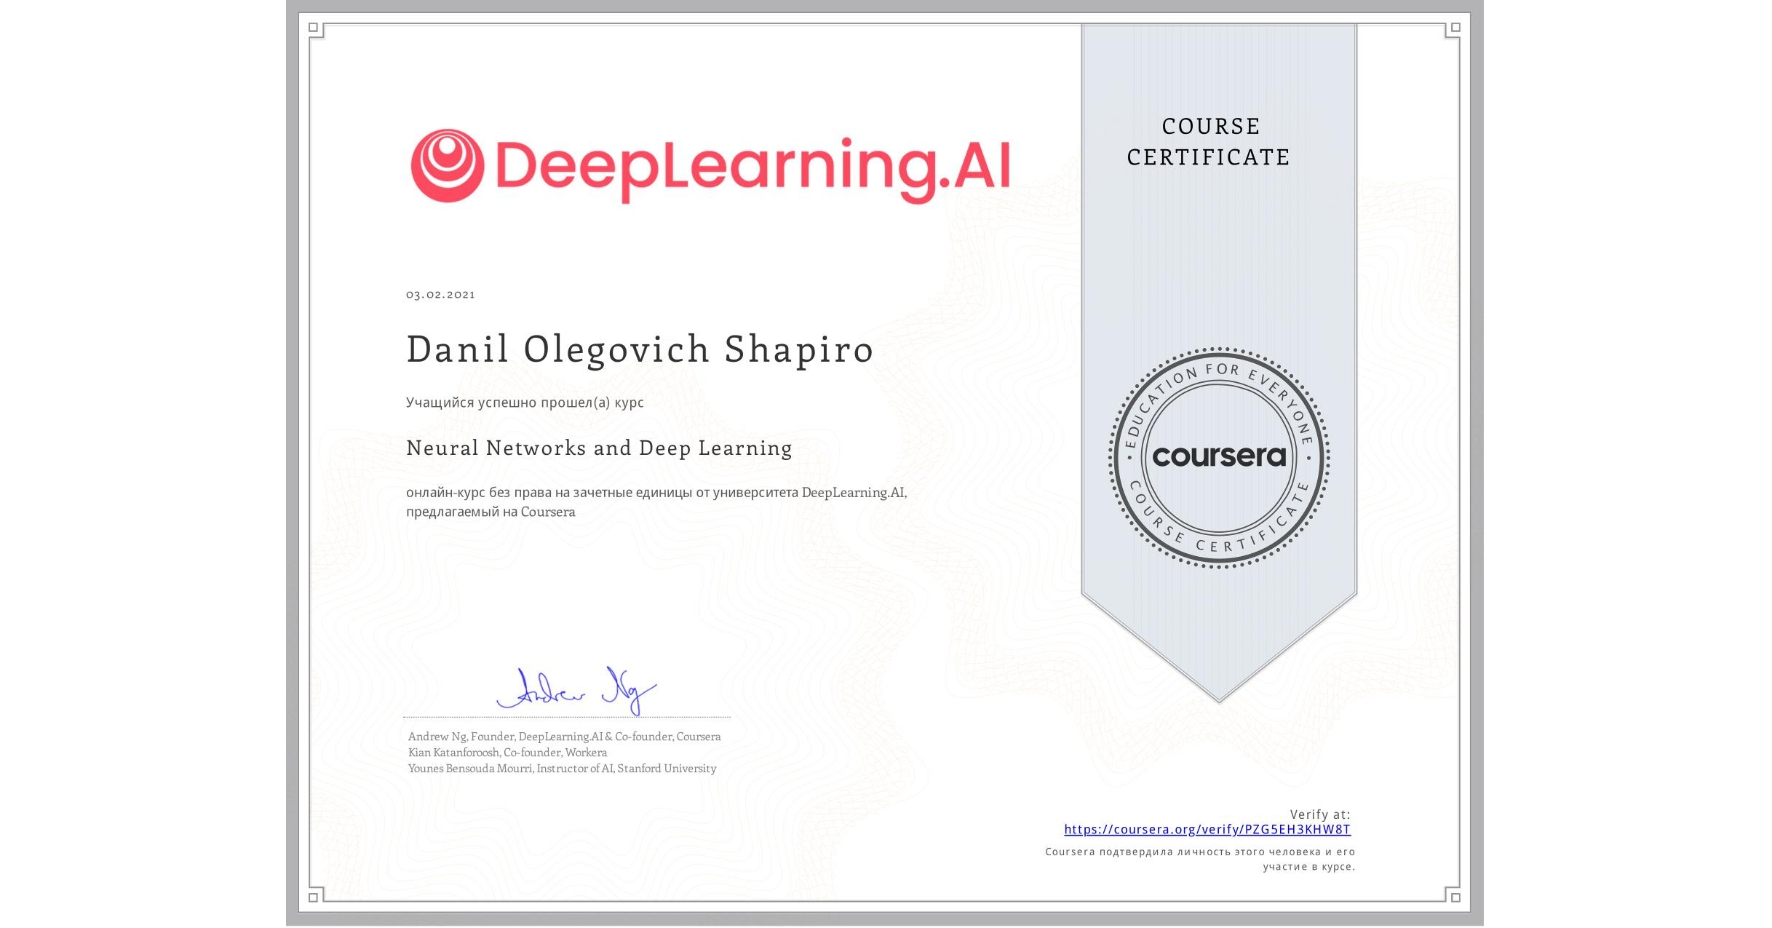 View certificate for Danil Olegovich Shapiro, Neural Networks and Deep Learning, an online non-credit course authorized by DeepLearning.AI and offered through Coursera